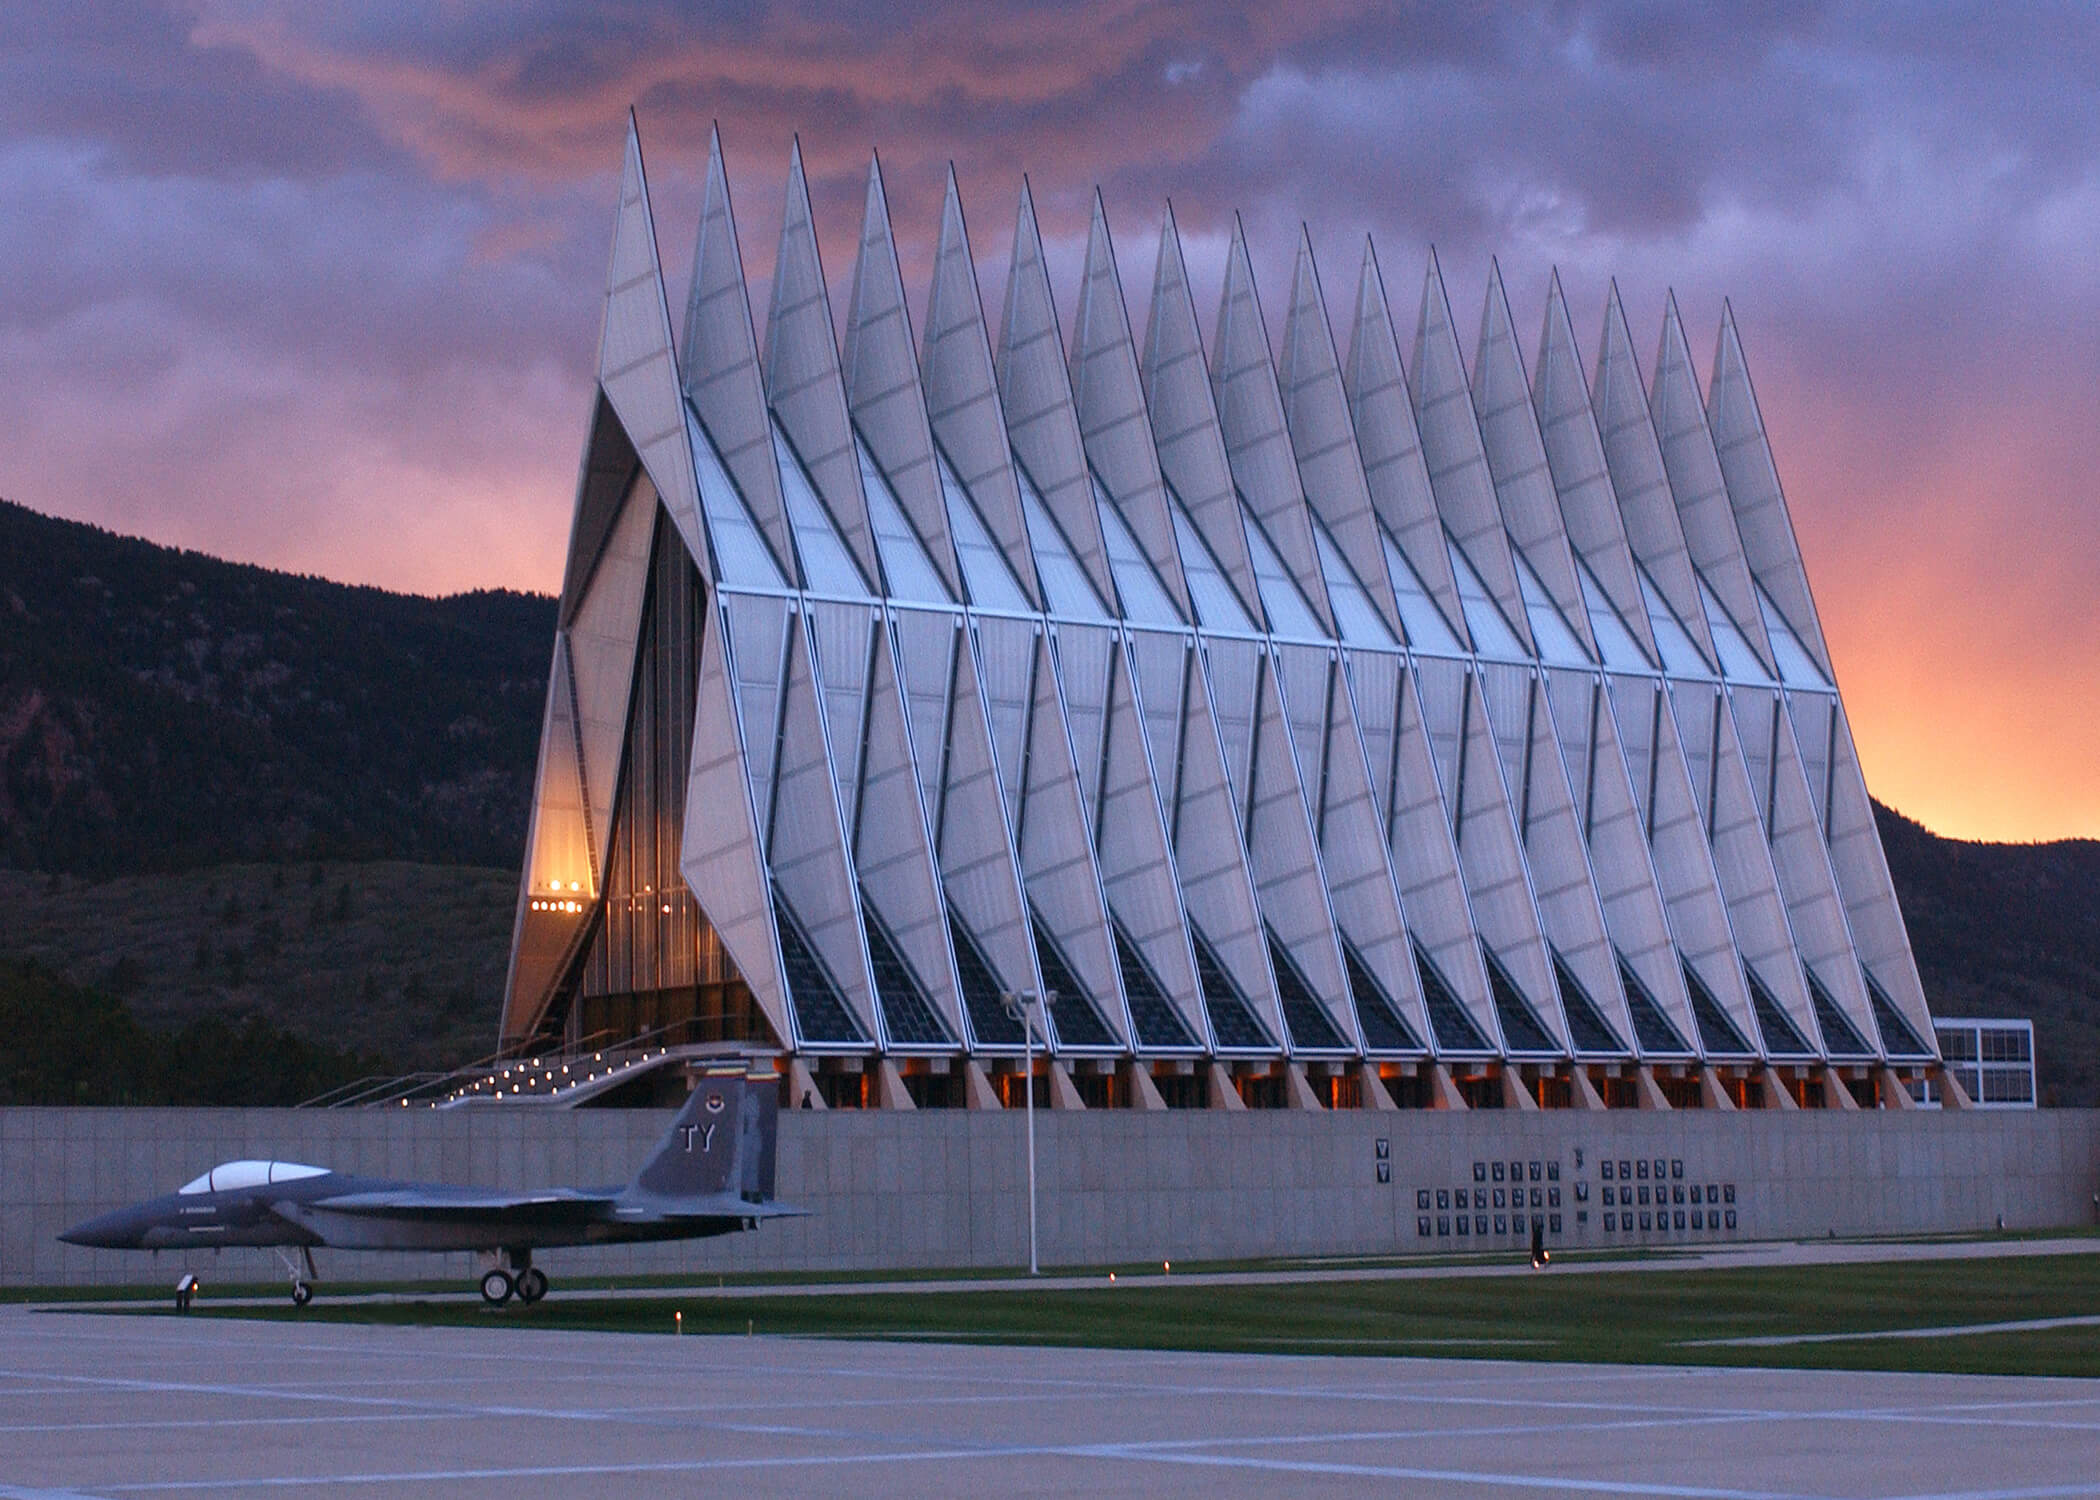 Image of a cadet chapel at the U.S. Air Force Academy.